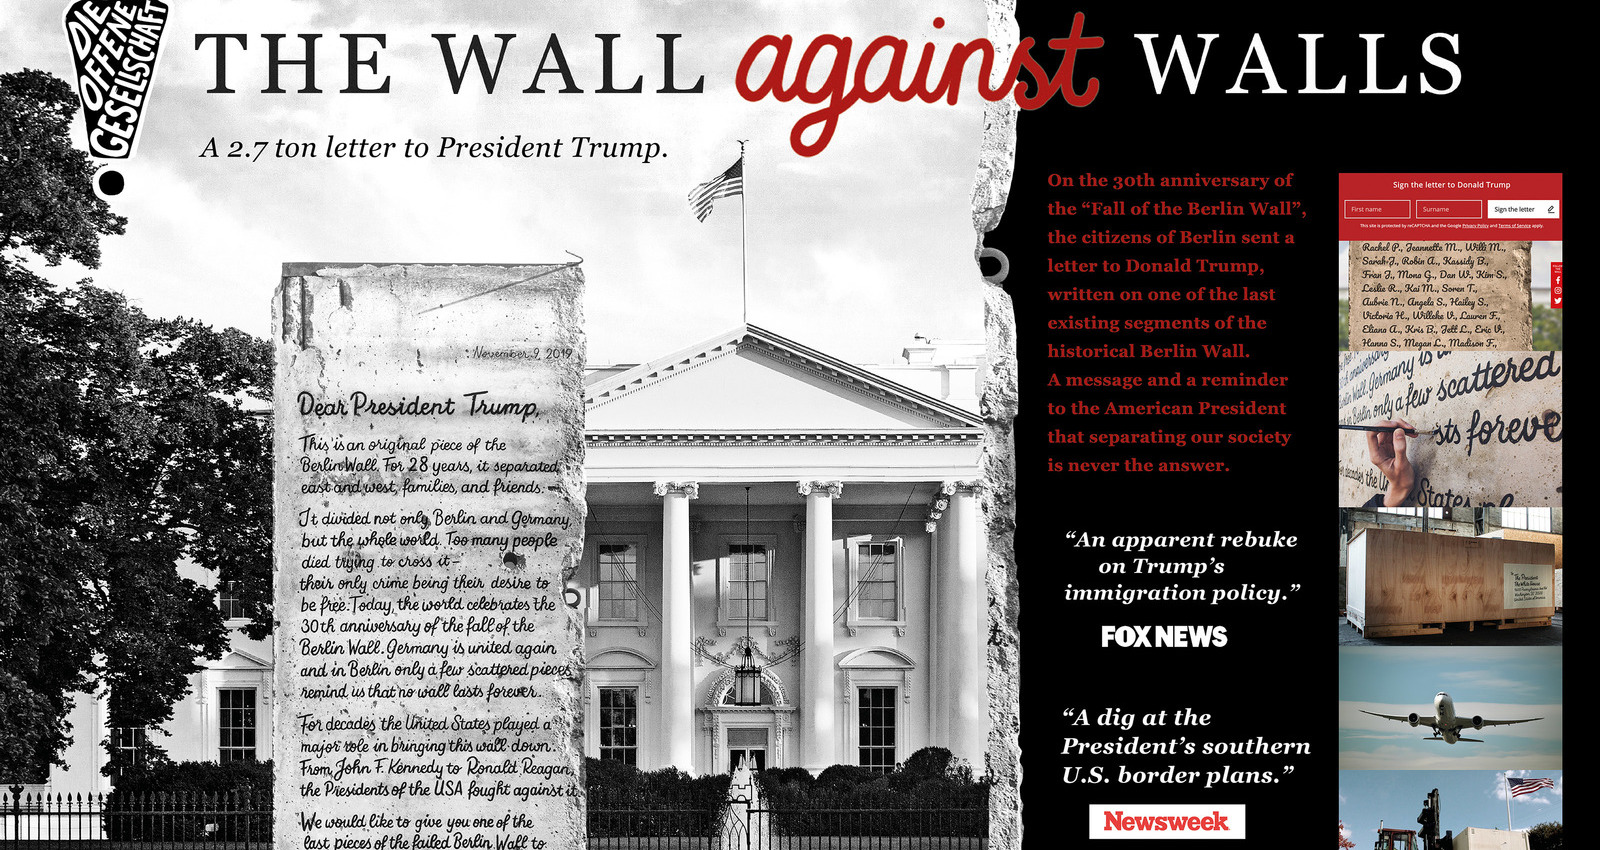 The Wall against Walls